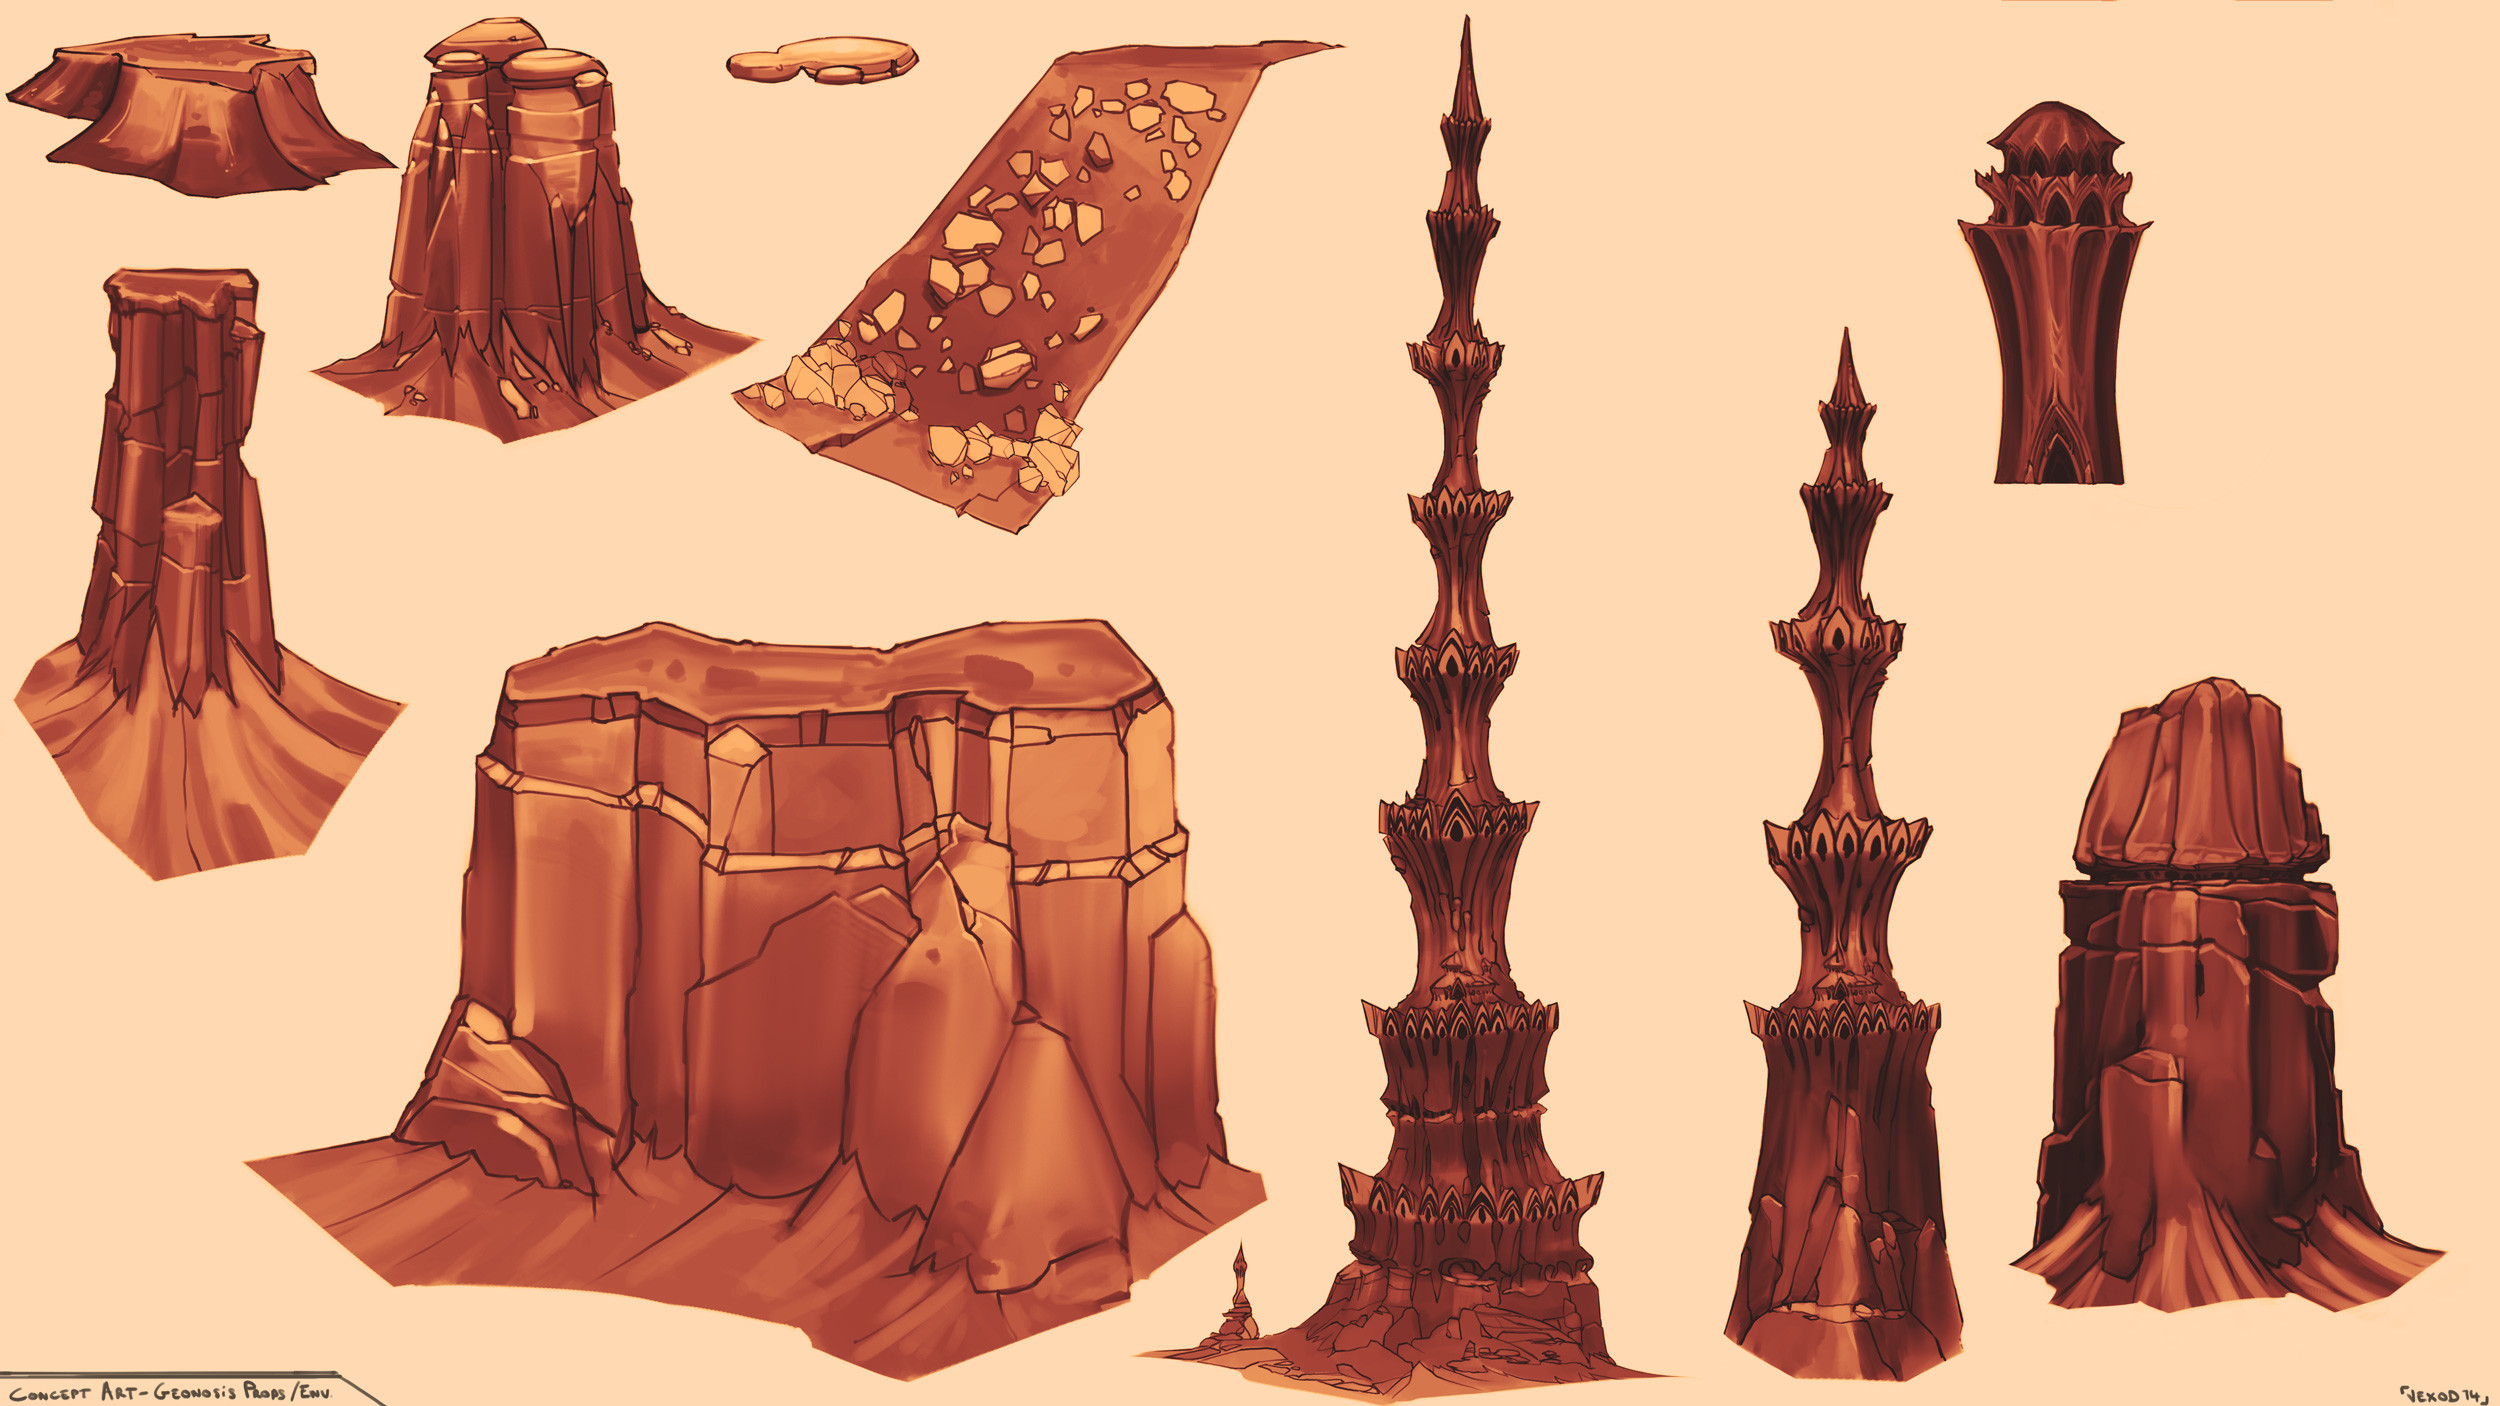 Some studies for Geonosis environment game art =)